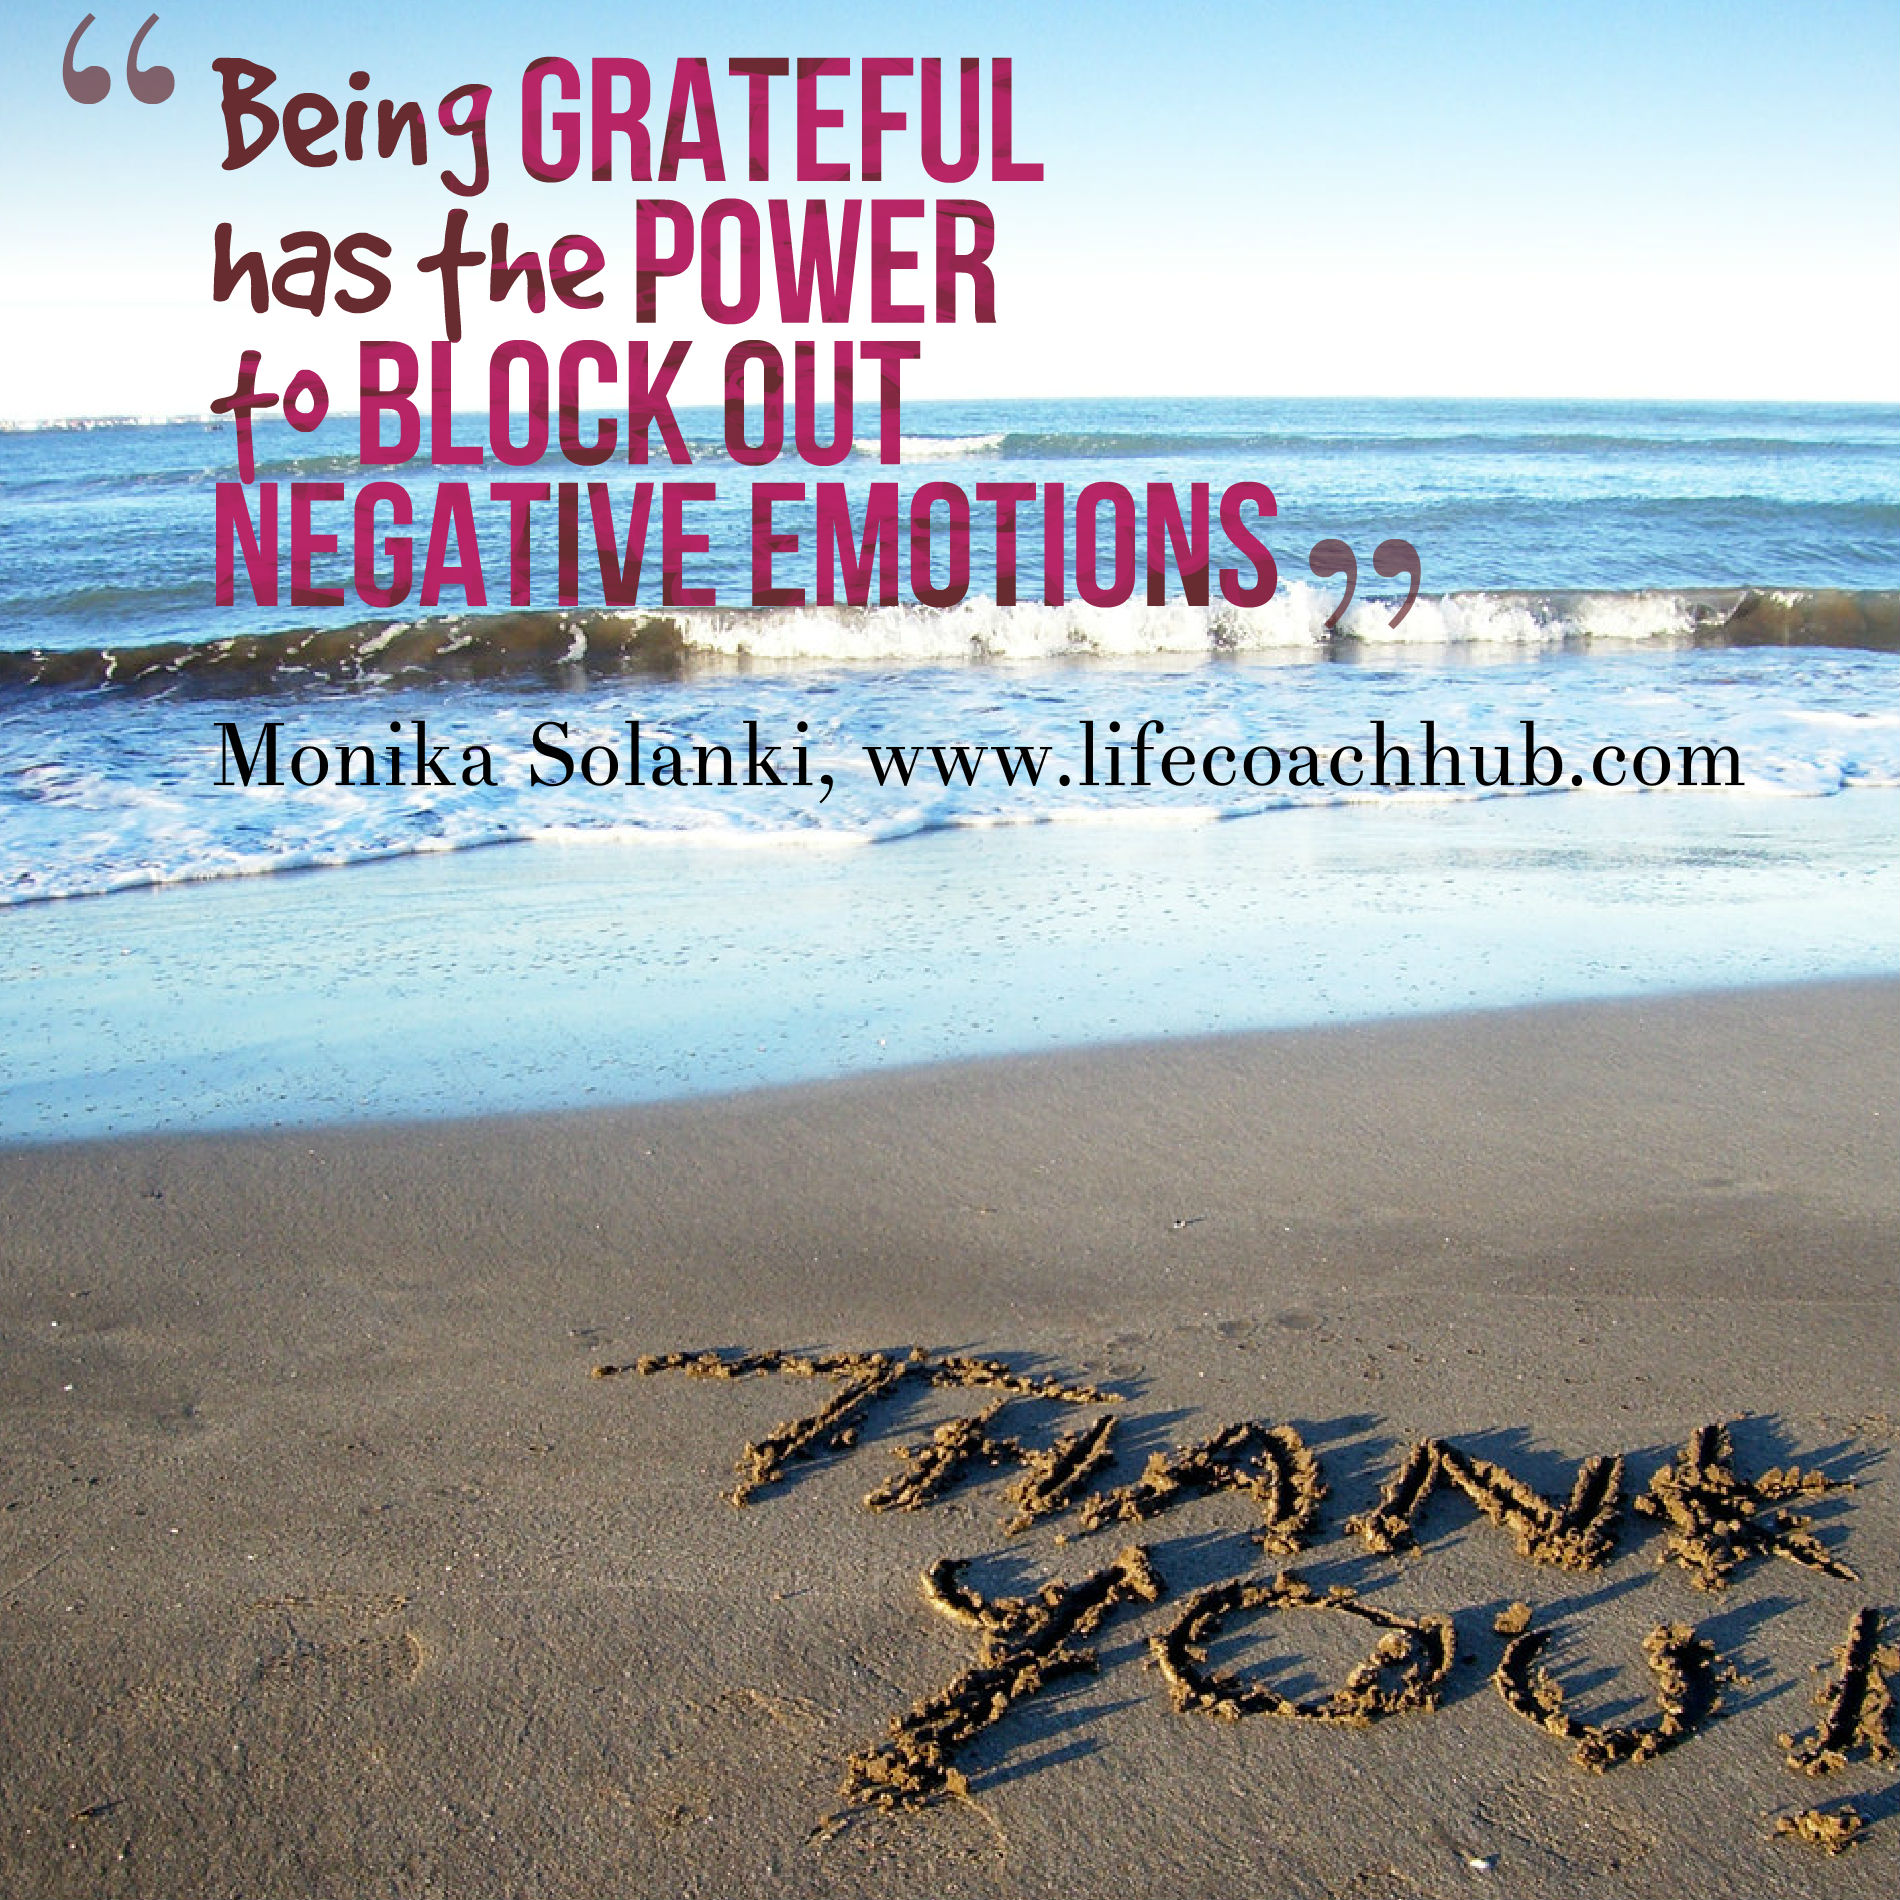 Being Grateful Has the Power to Block Out Negative Emotions